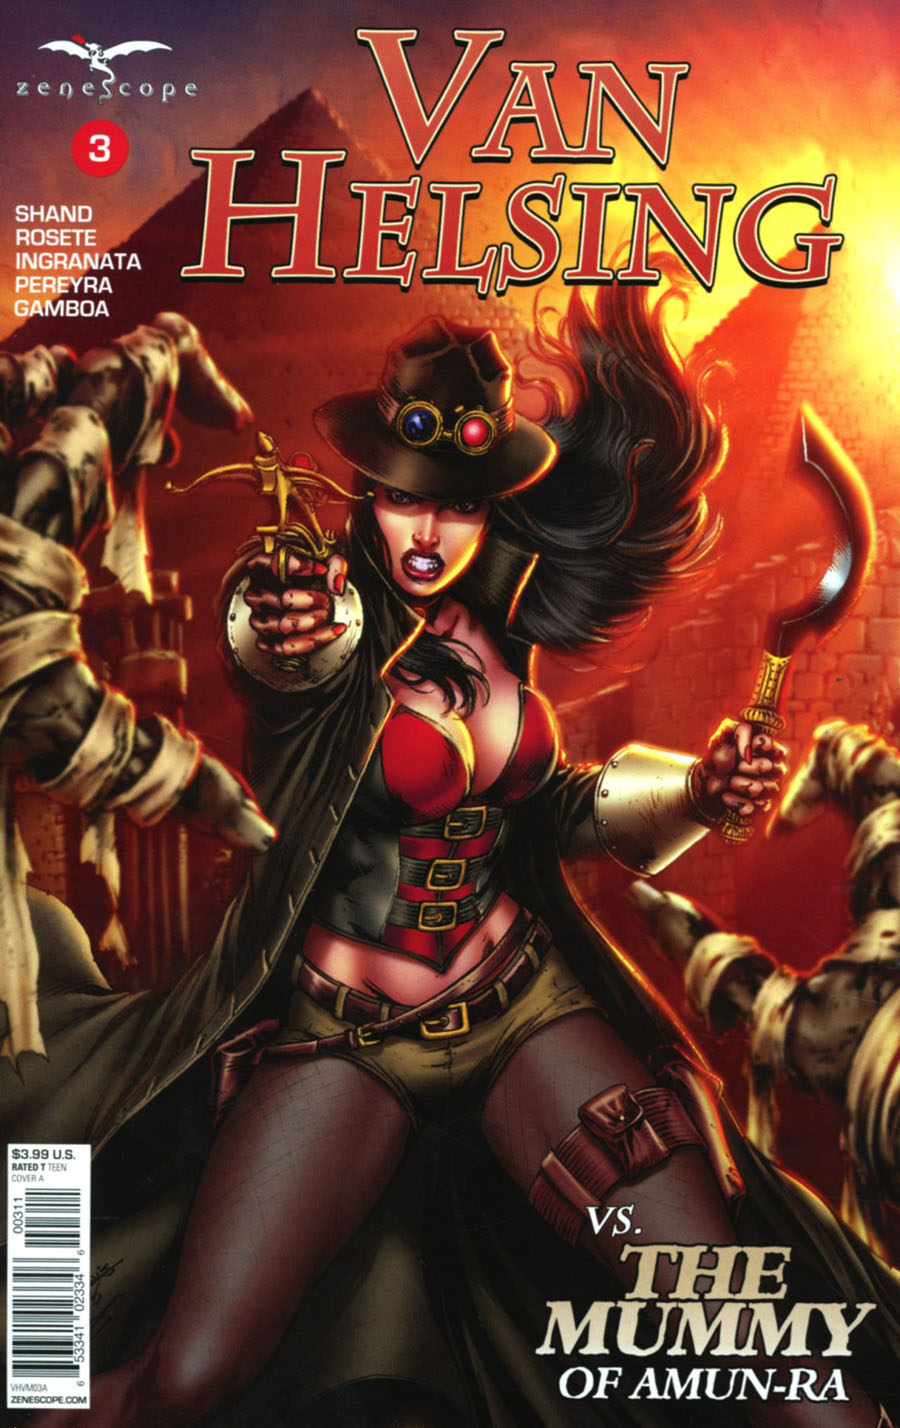 Grimm Fairy Tales Presents Van Helsing vs The Mummy Of Amun-Ra #3 Cover A Jose Luis